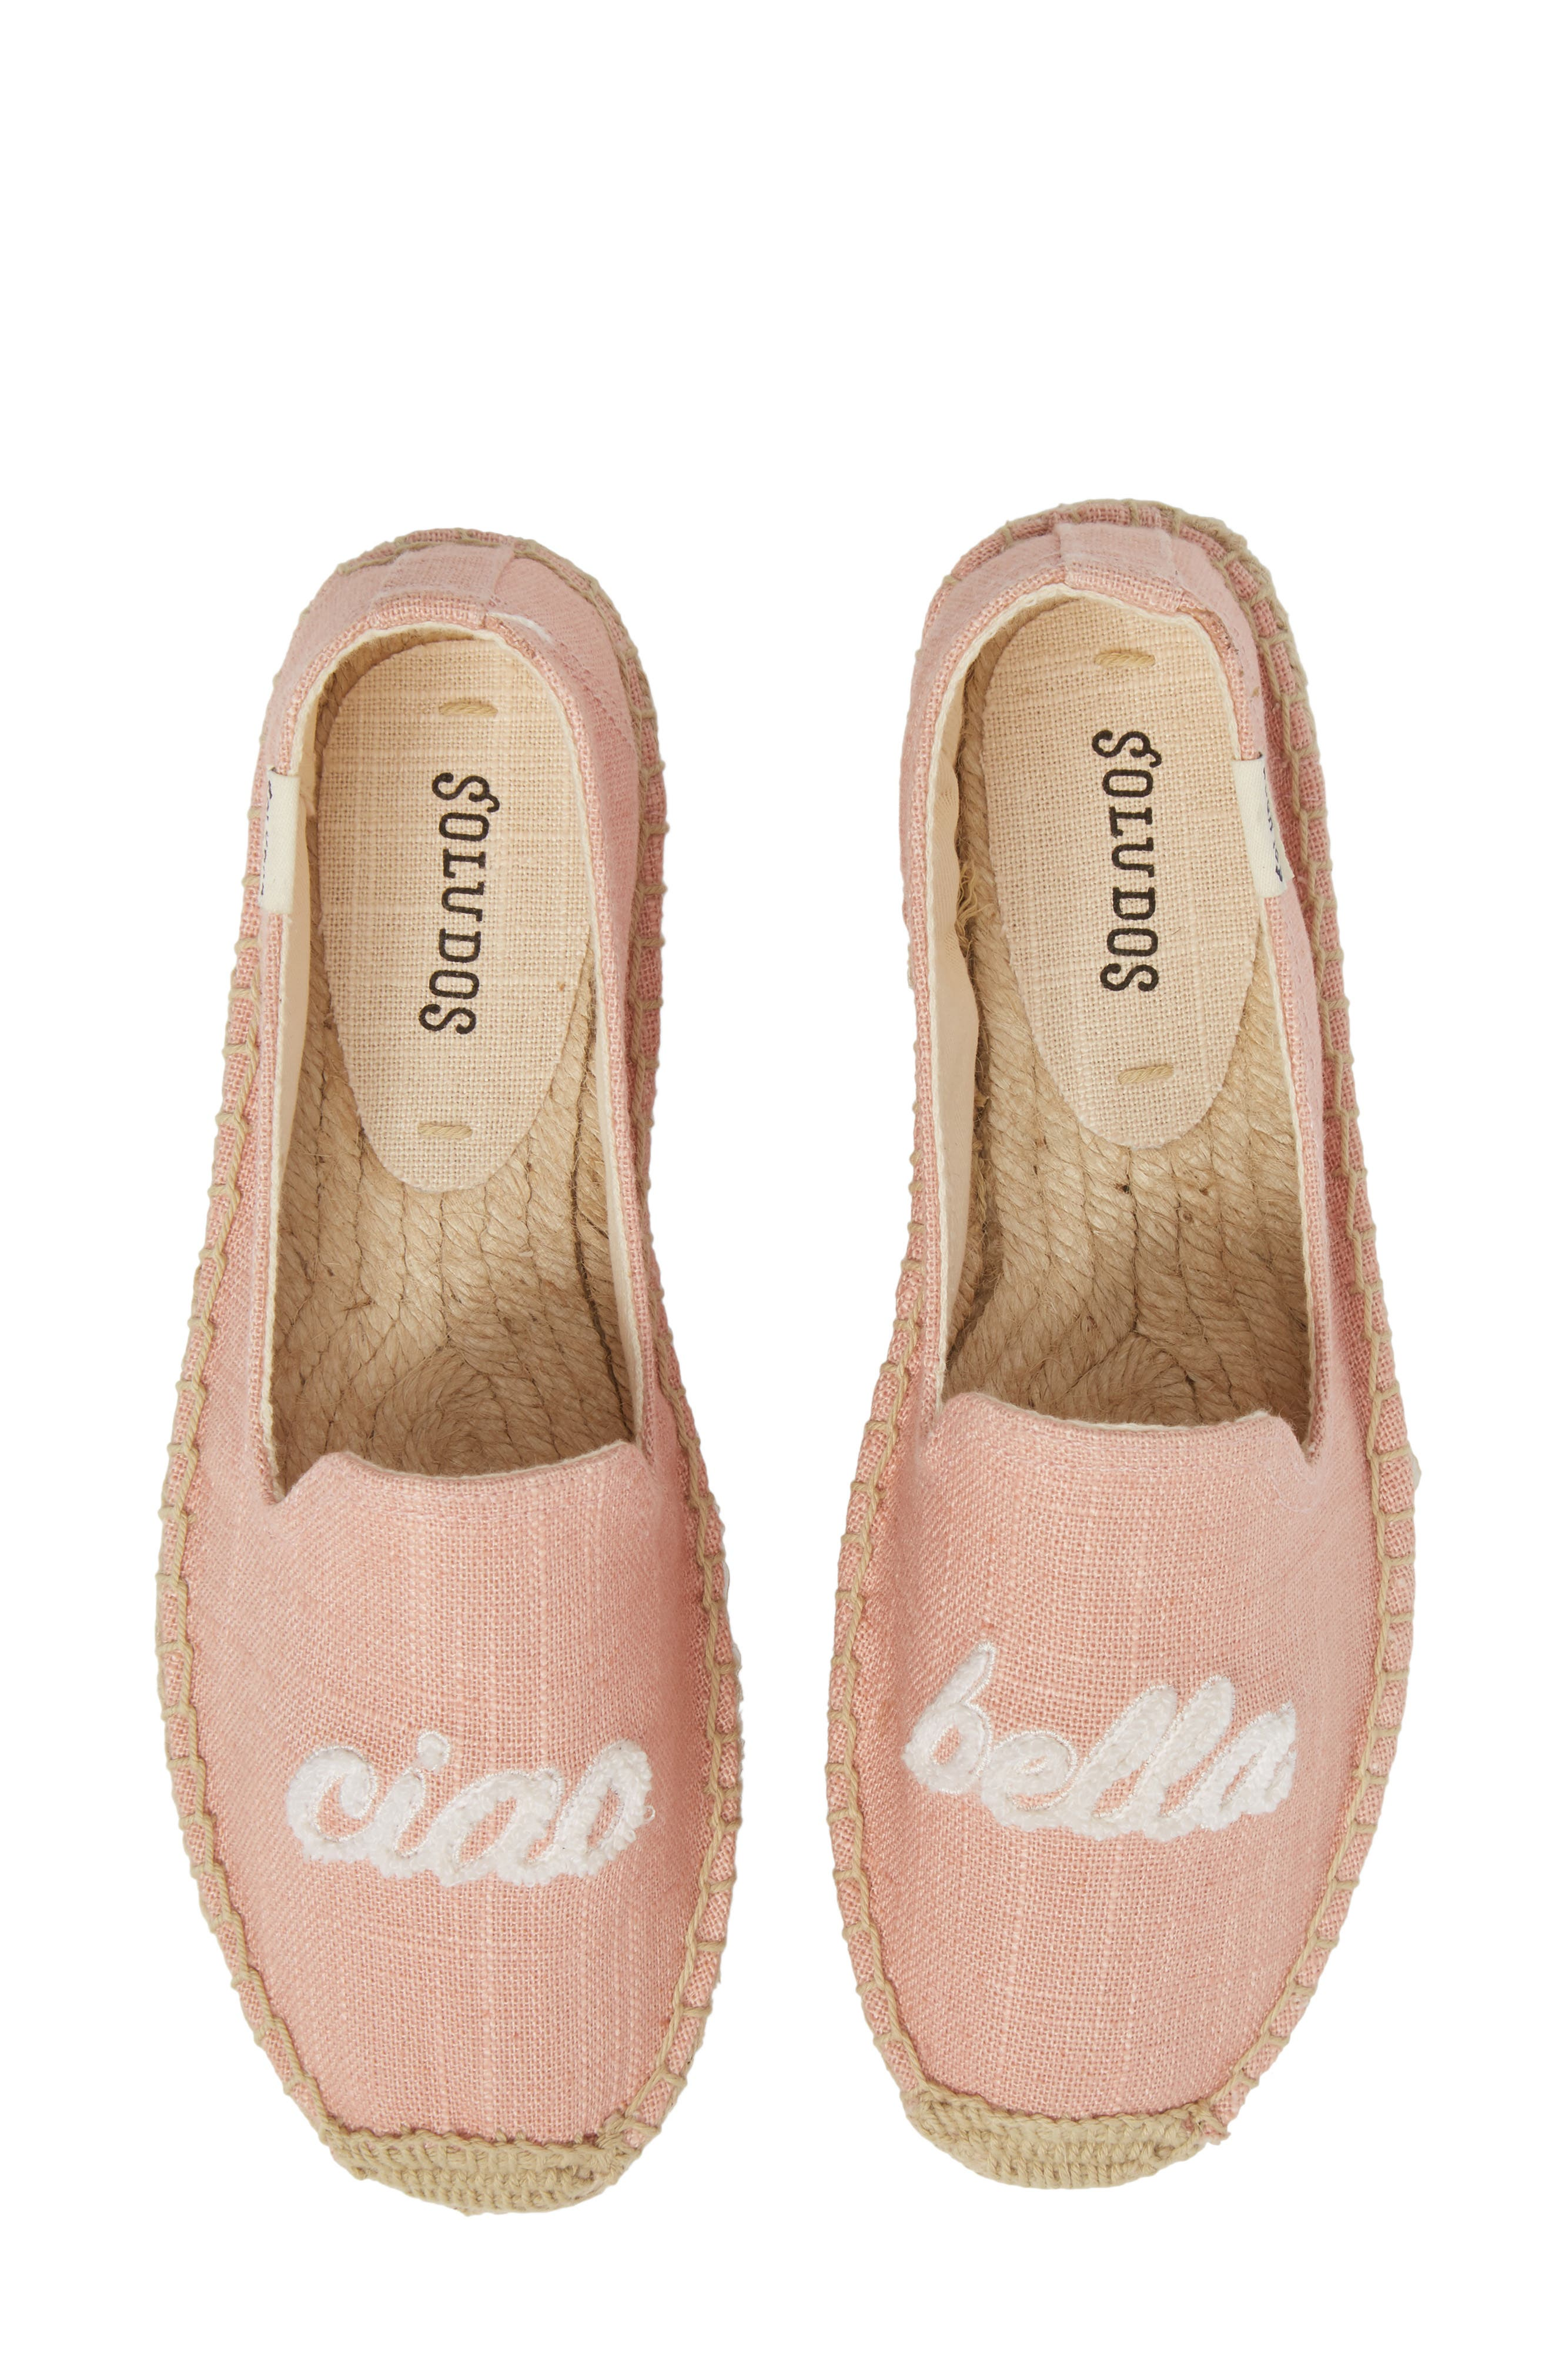 Soludos Ciao Bella Espadrille Flat (Women)